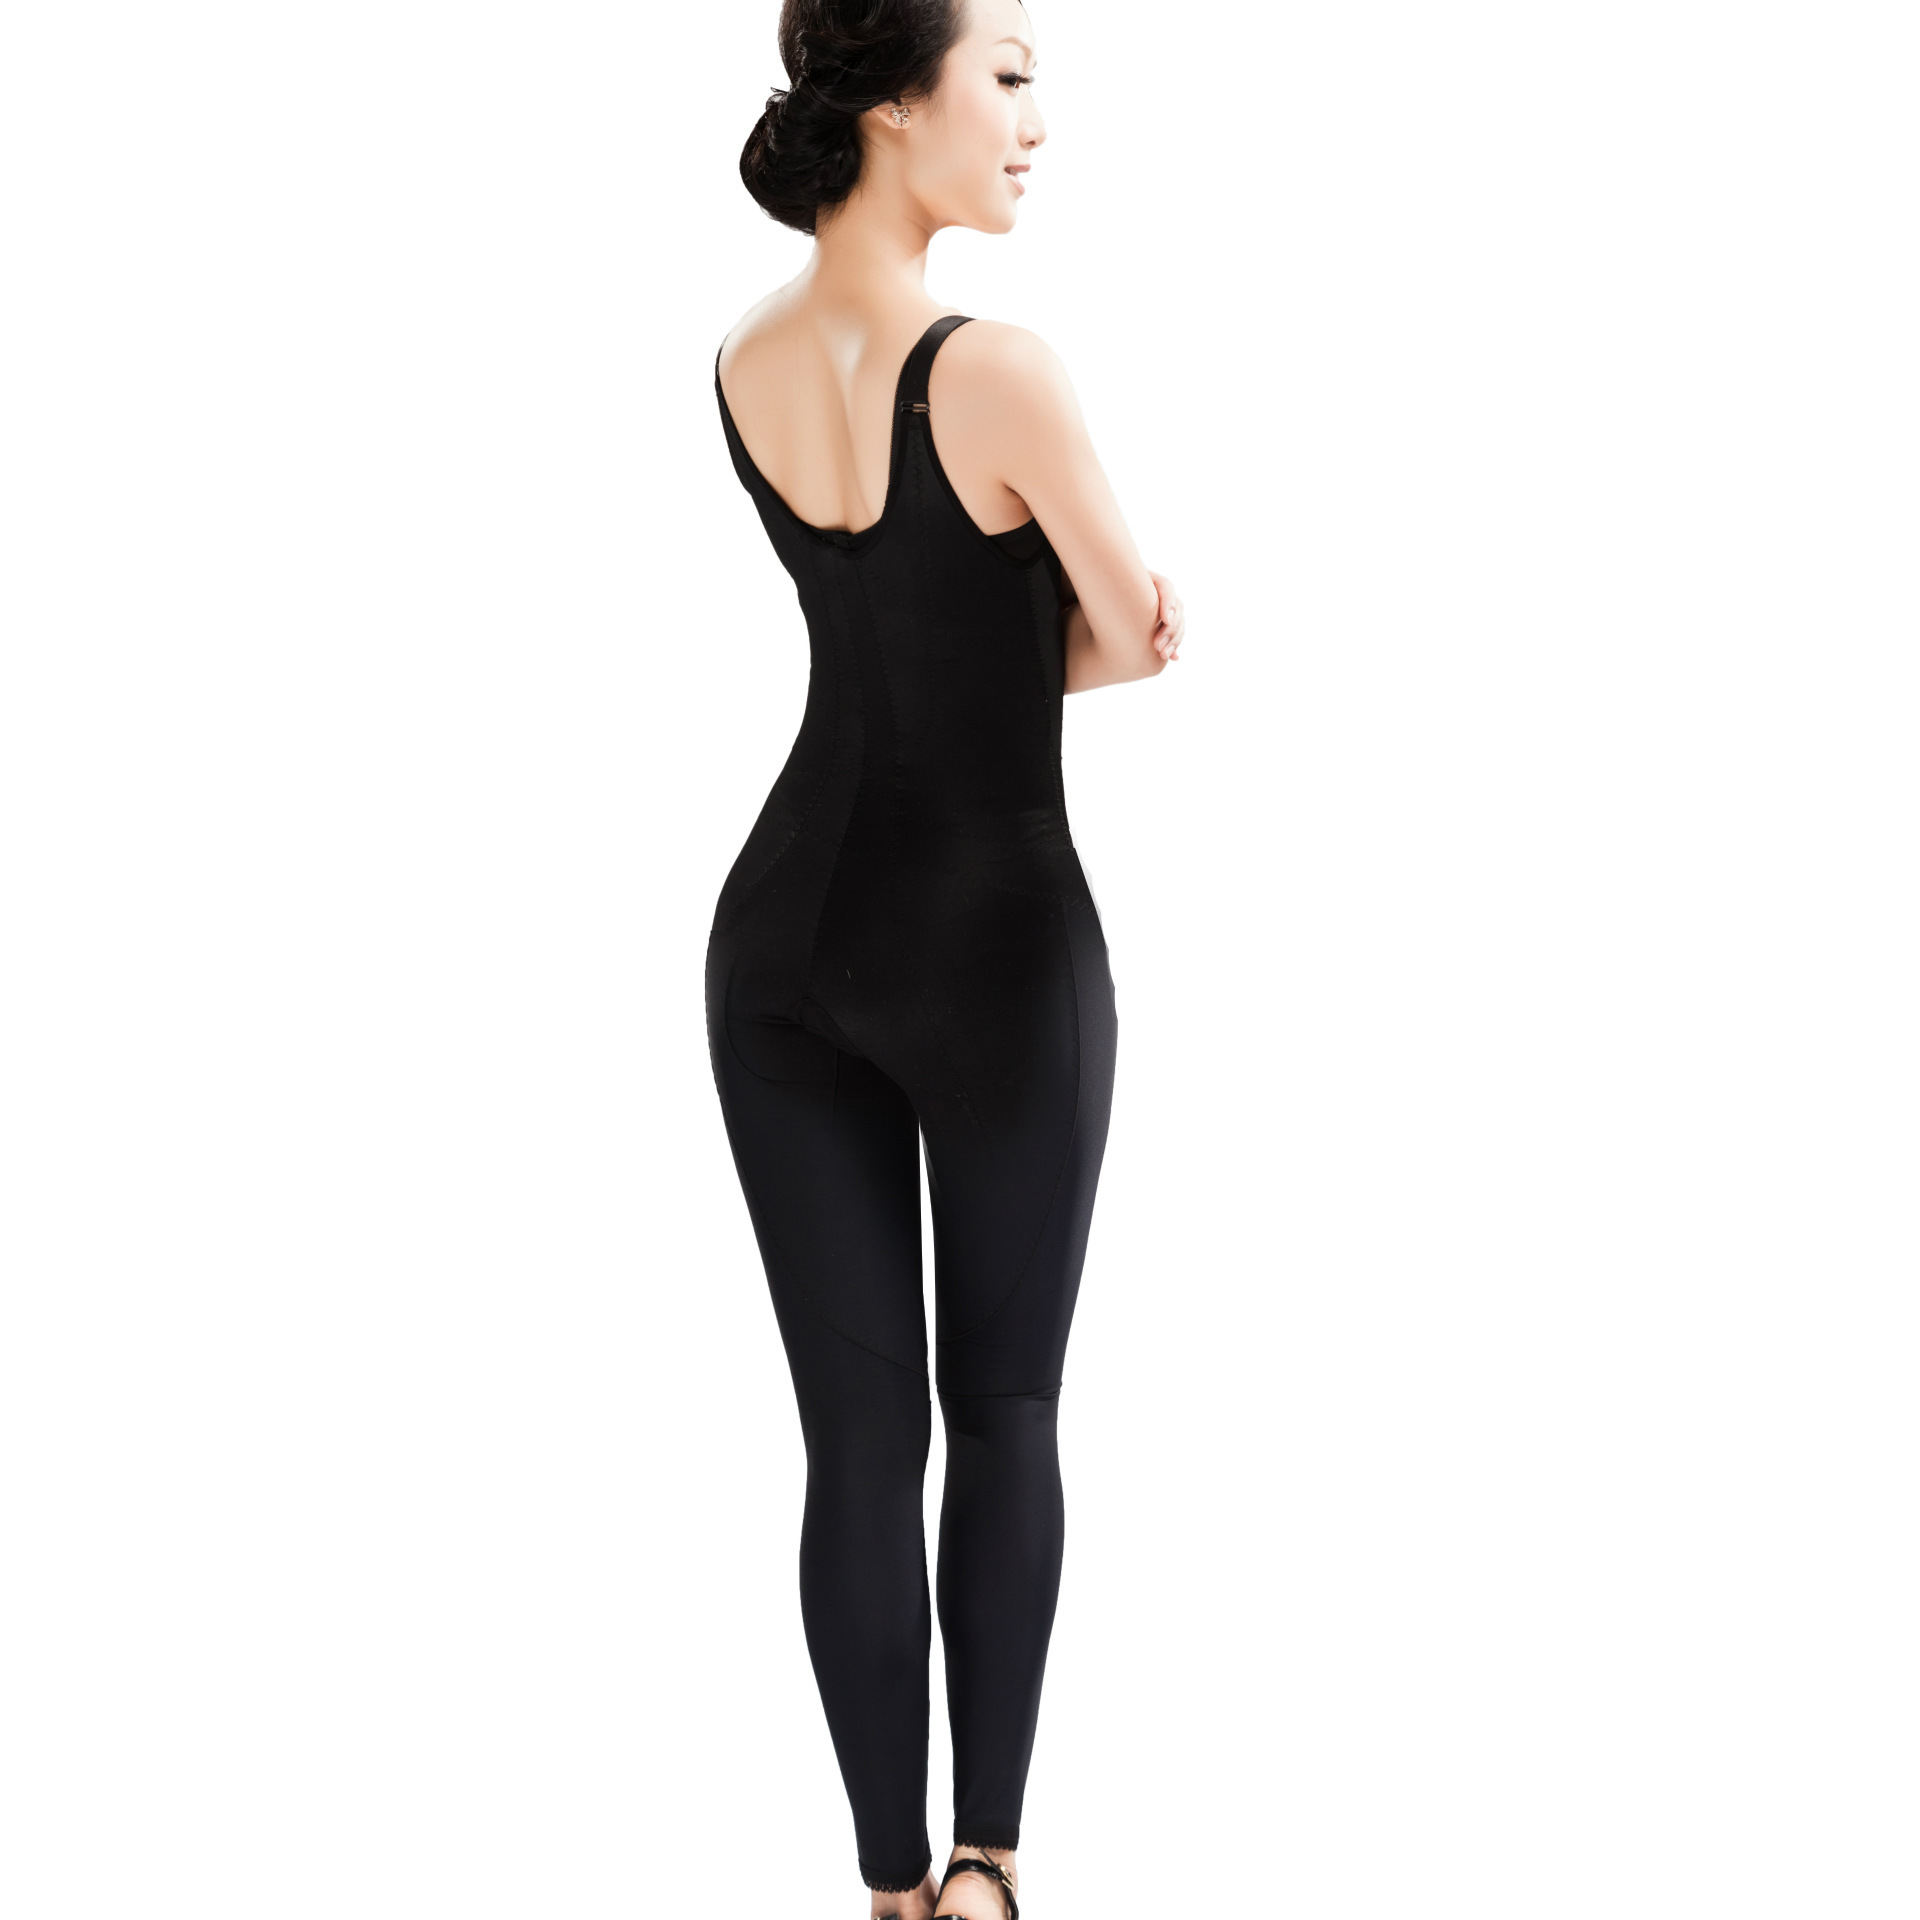 France Lillemet medical body shaper MH1841